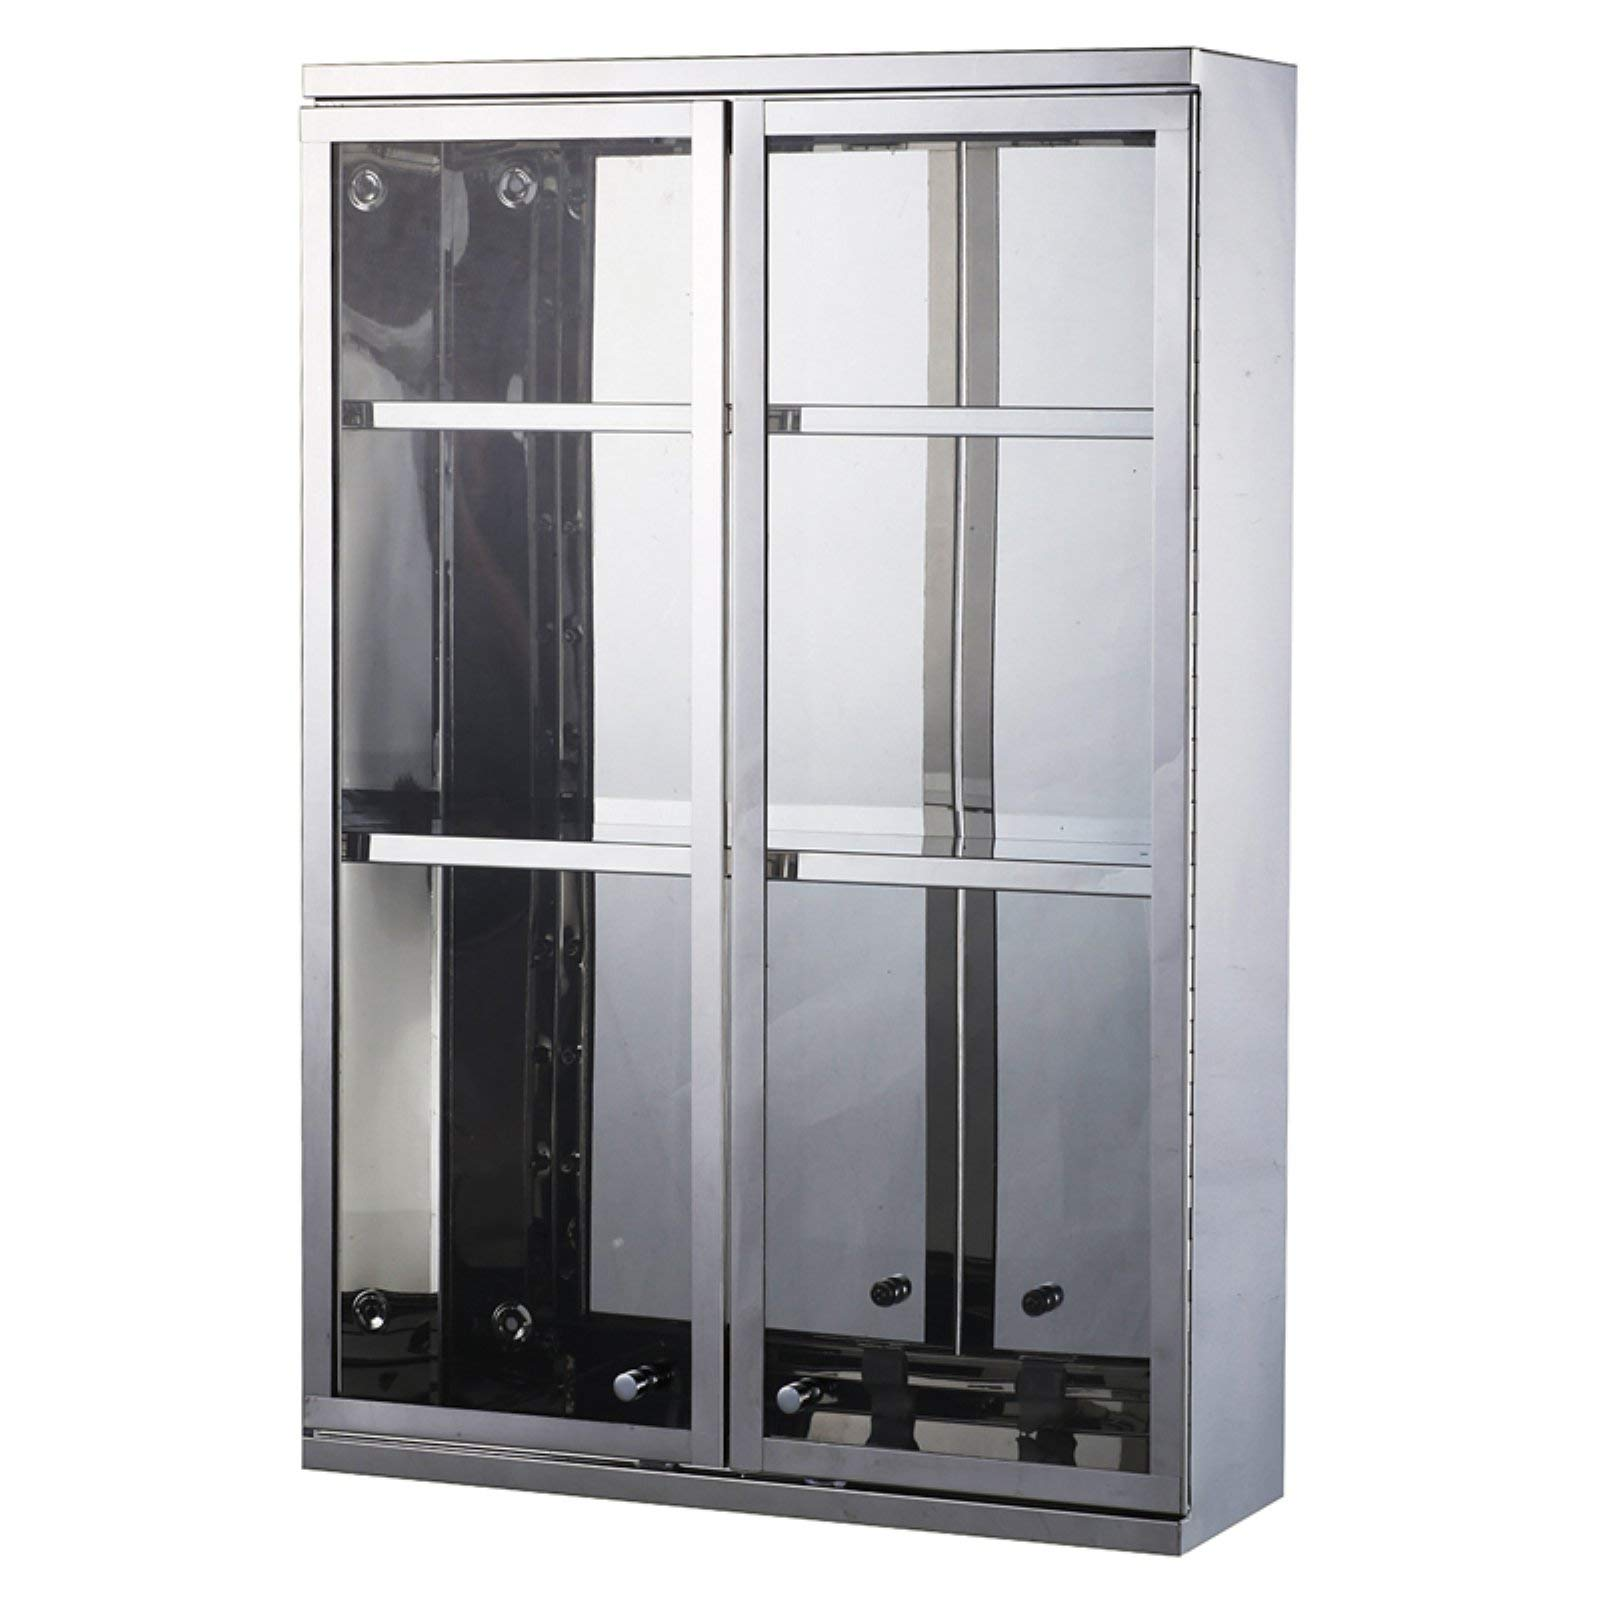 Sleek China Cabinet with Modern Appeal, Durably Constructed of Stainless Steel and Glass, Three Shelves for Storage and Display, Contemporary Design with Metallic Silver Finish + Expert Home Guide